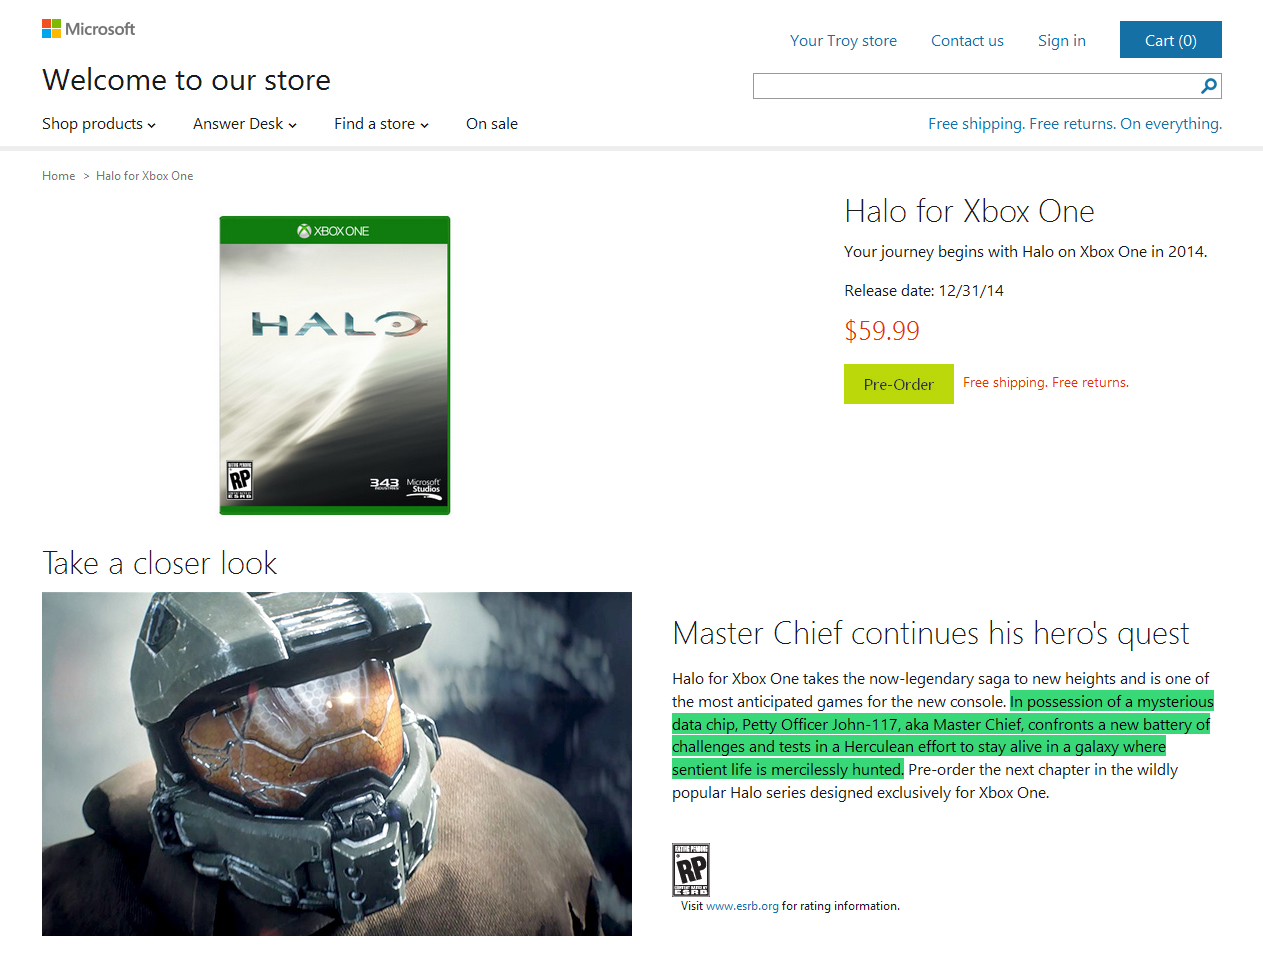 halo-xbox-one-story-overview